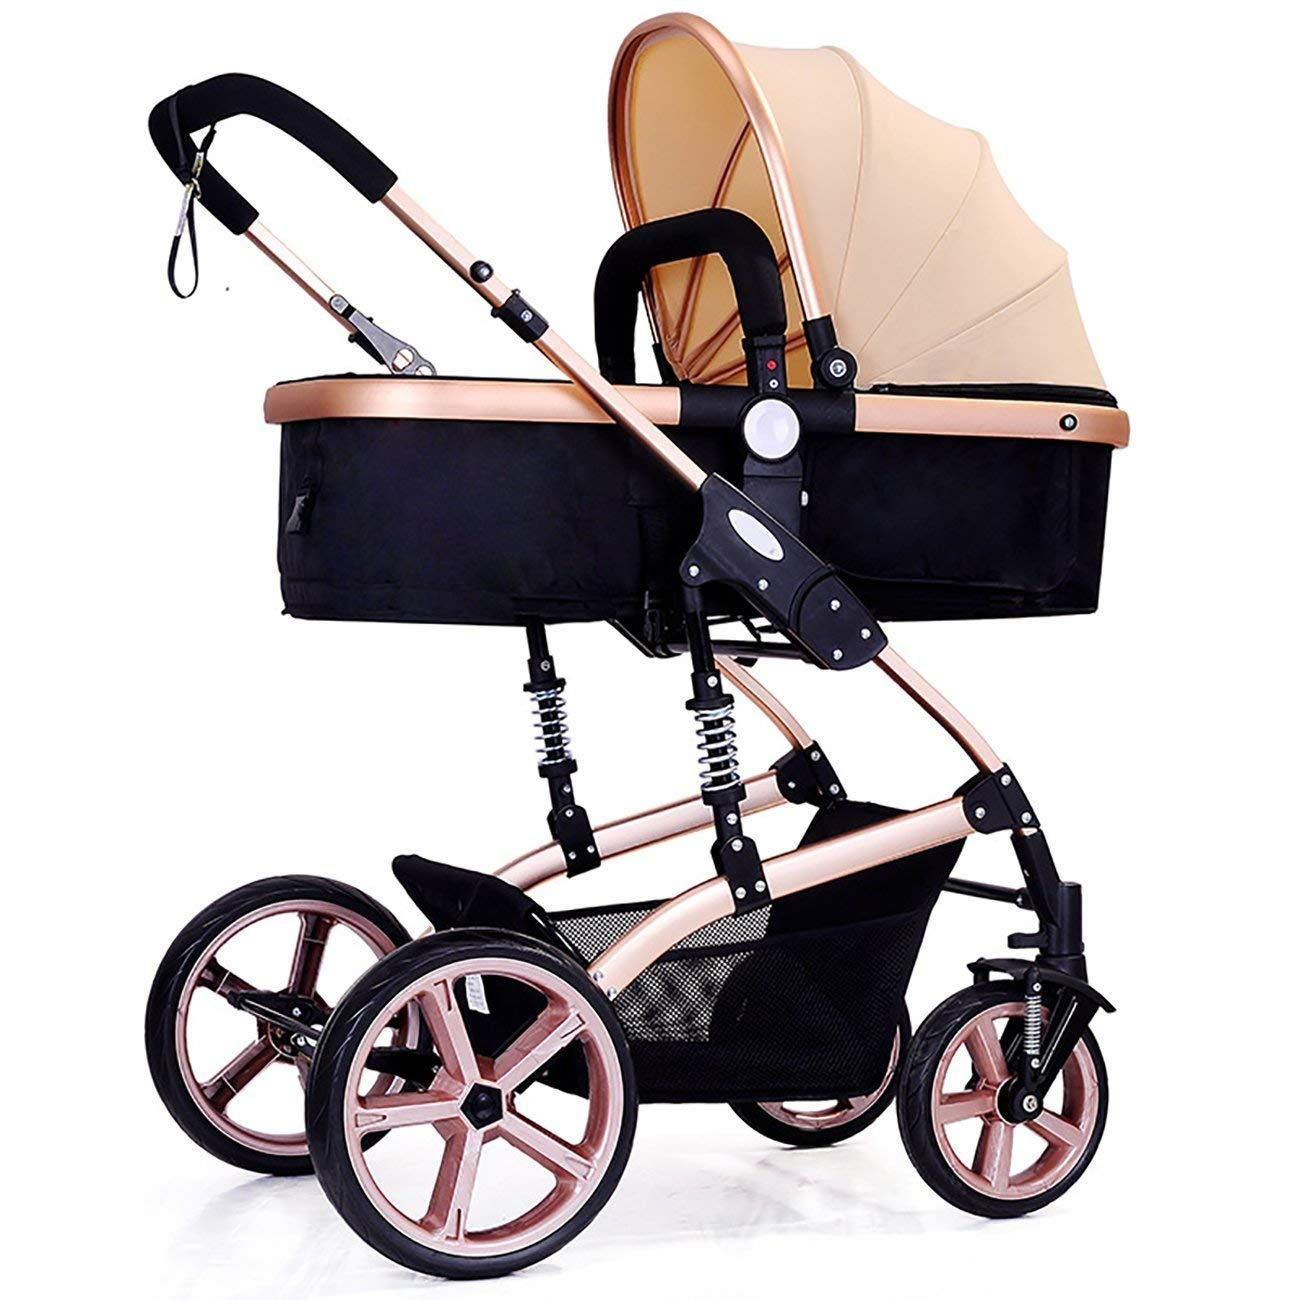 MAOSF Pushchairs Four Seasons prams fold High Landscape Toddlers Baby pushchairs Bidirectional Newborn Strollers Suitable for Children 0-3 Years Old